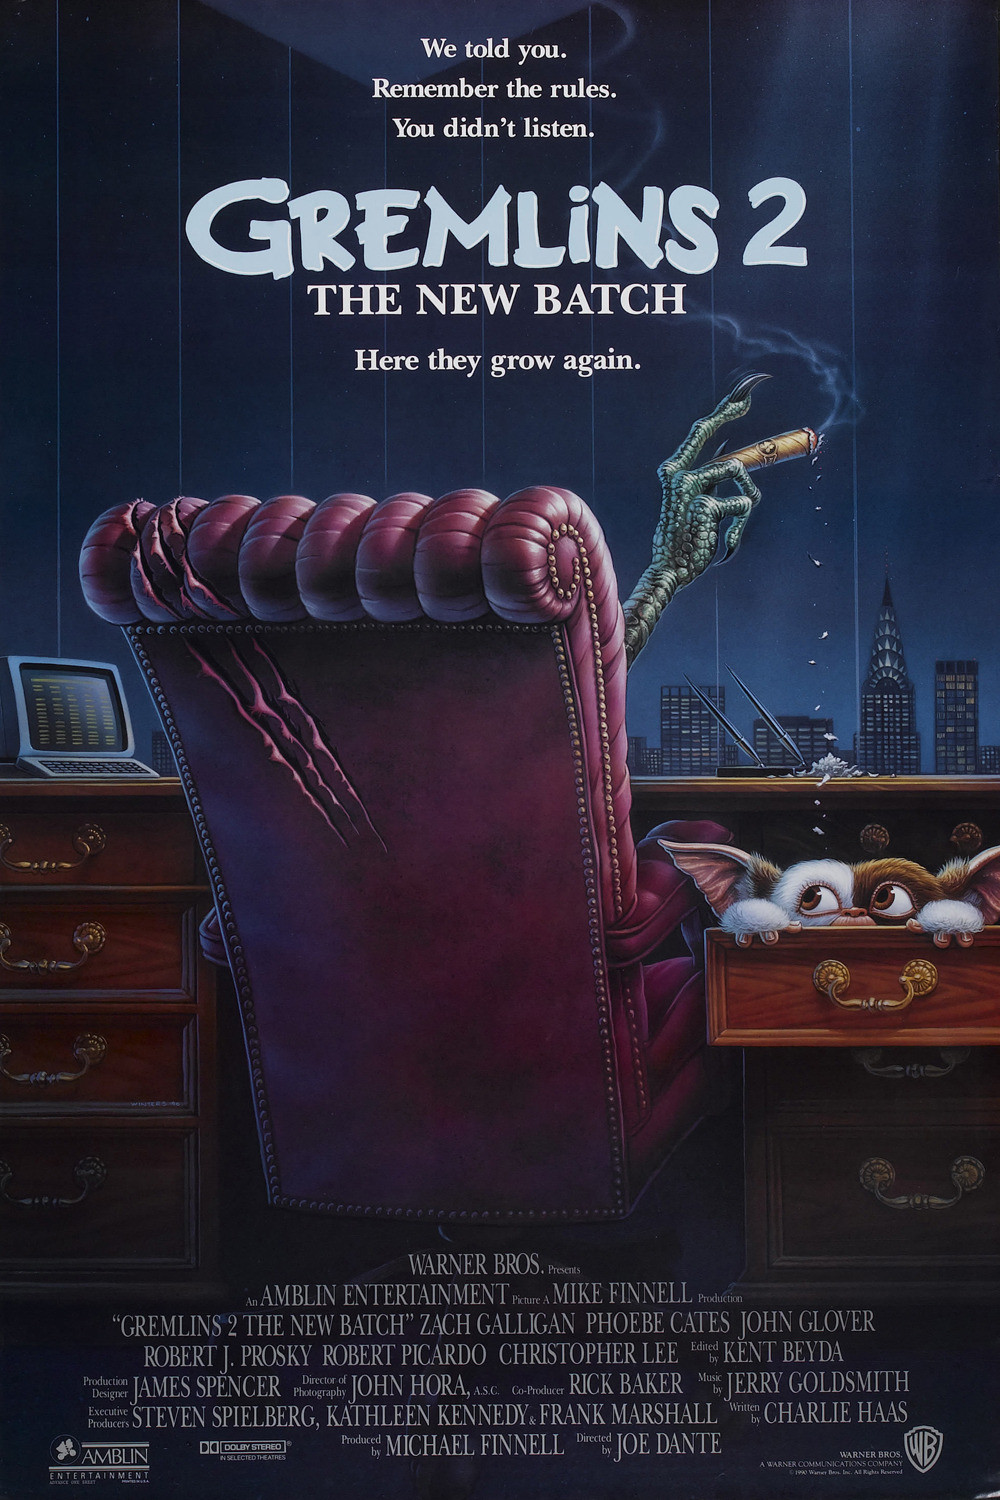 gremlins_2_the_new_batch_poster_1990_01.jpg